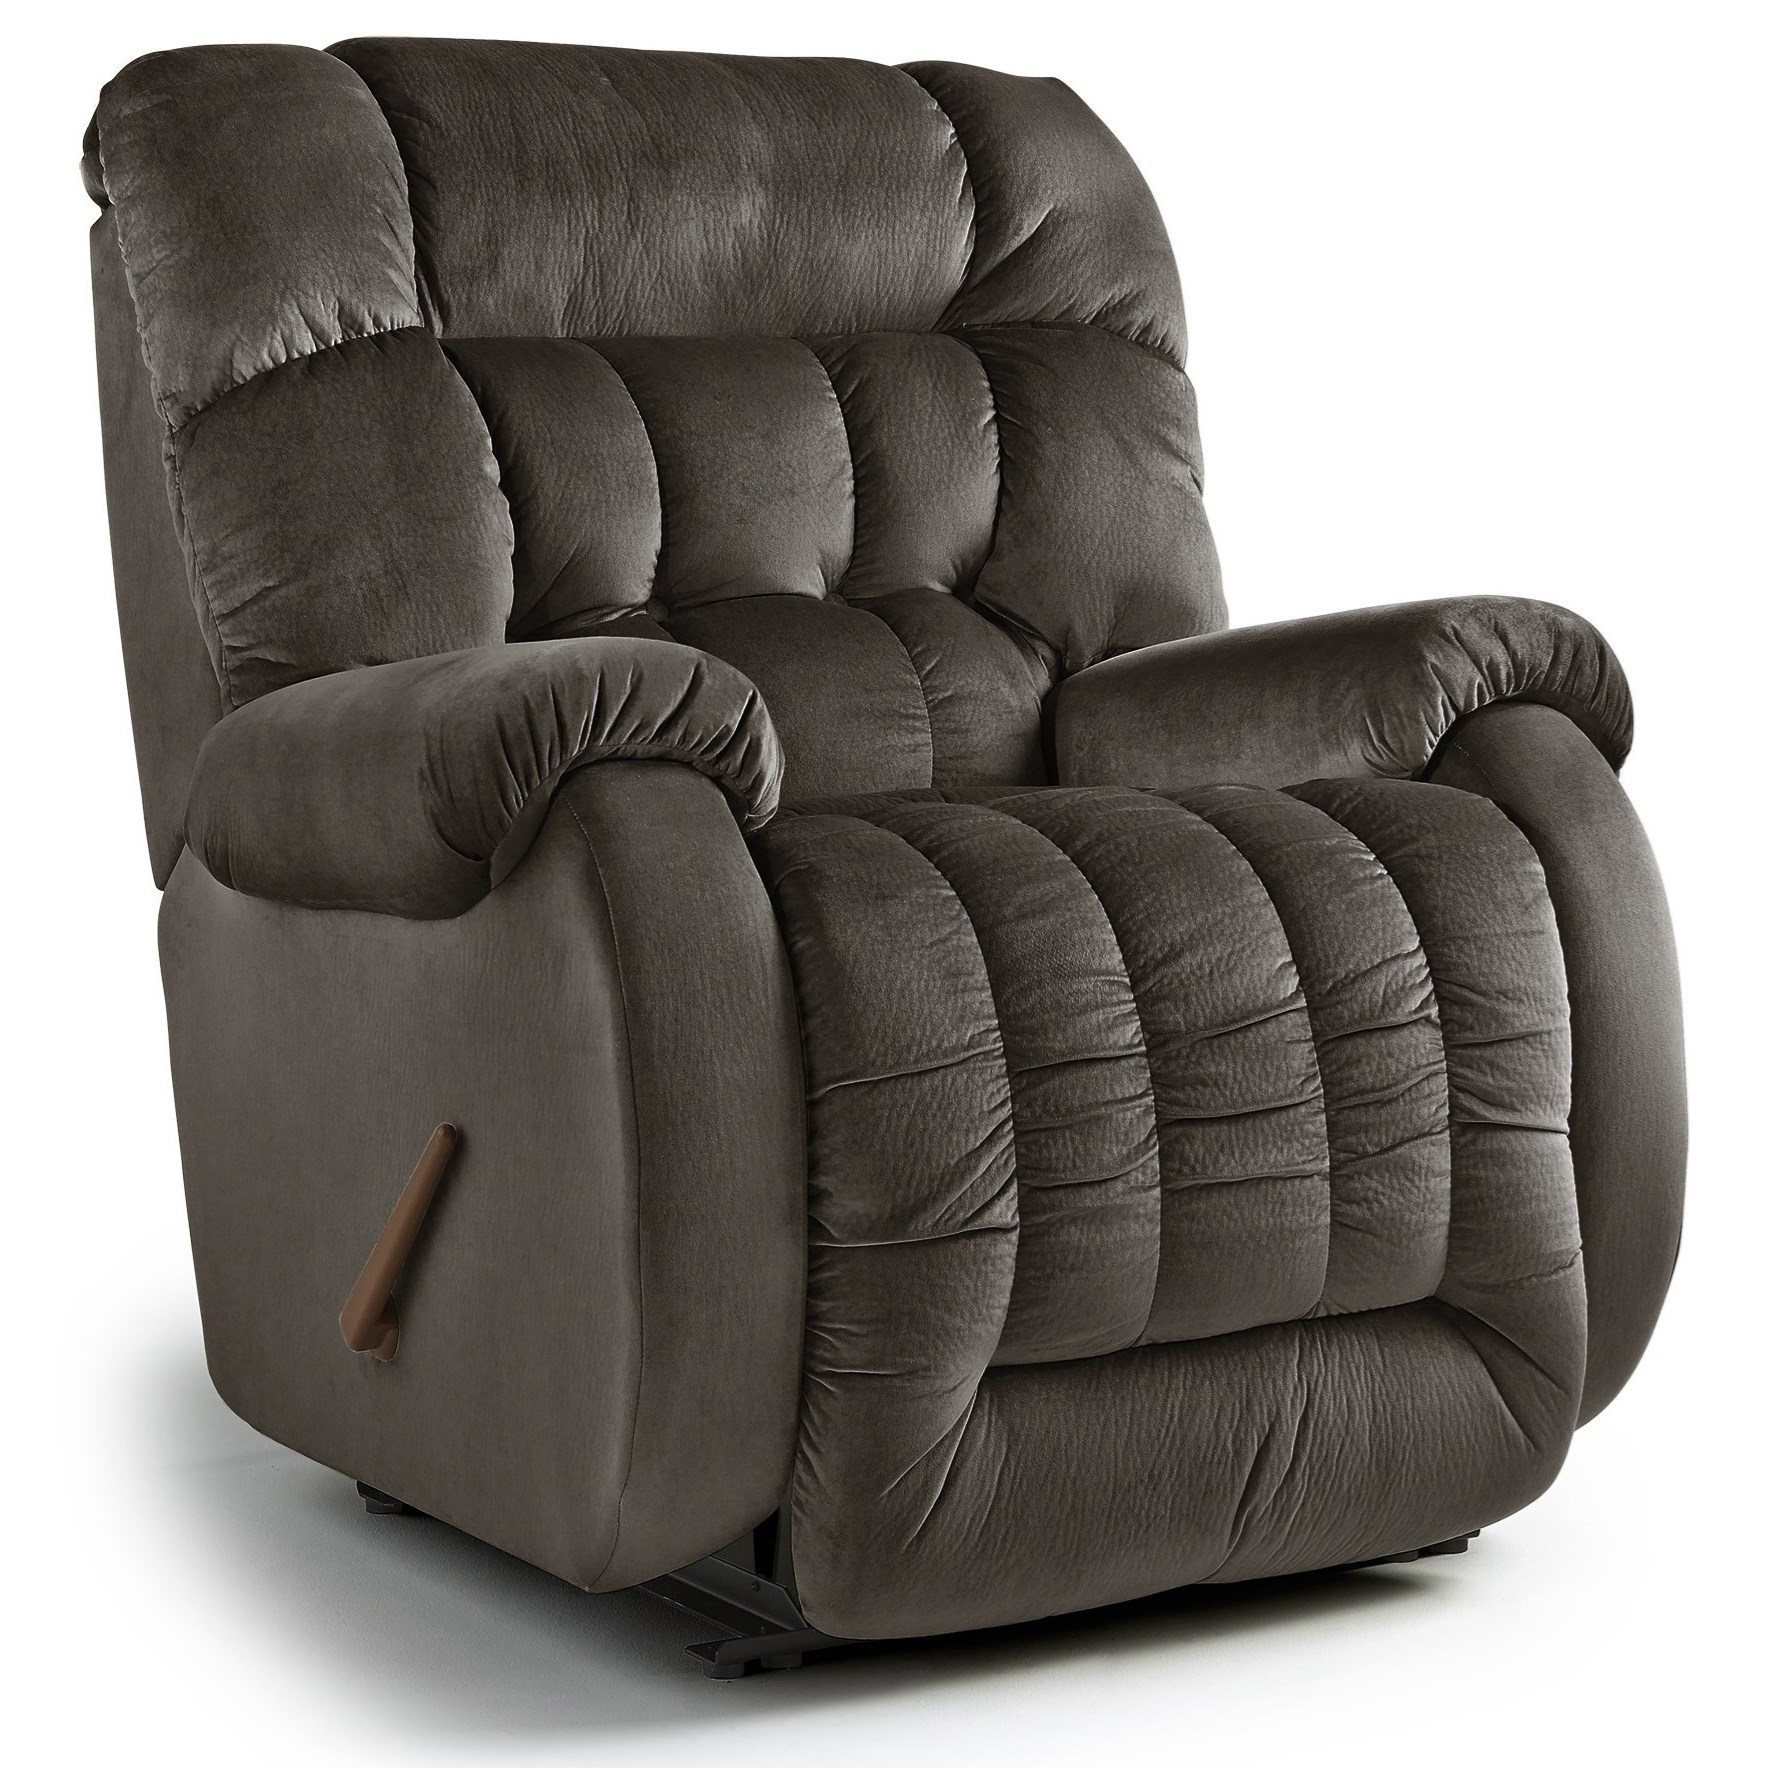 Best Home Furnishings The Beast Oversized Beast Recliner Wayside Furniture Recliners